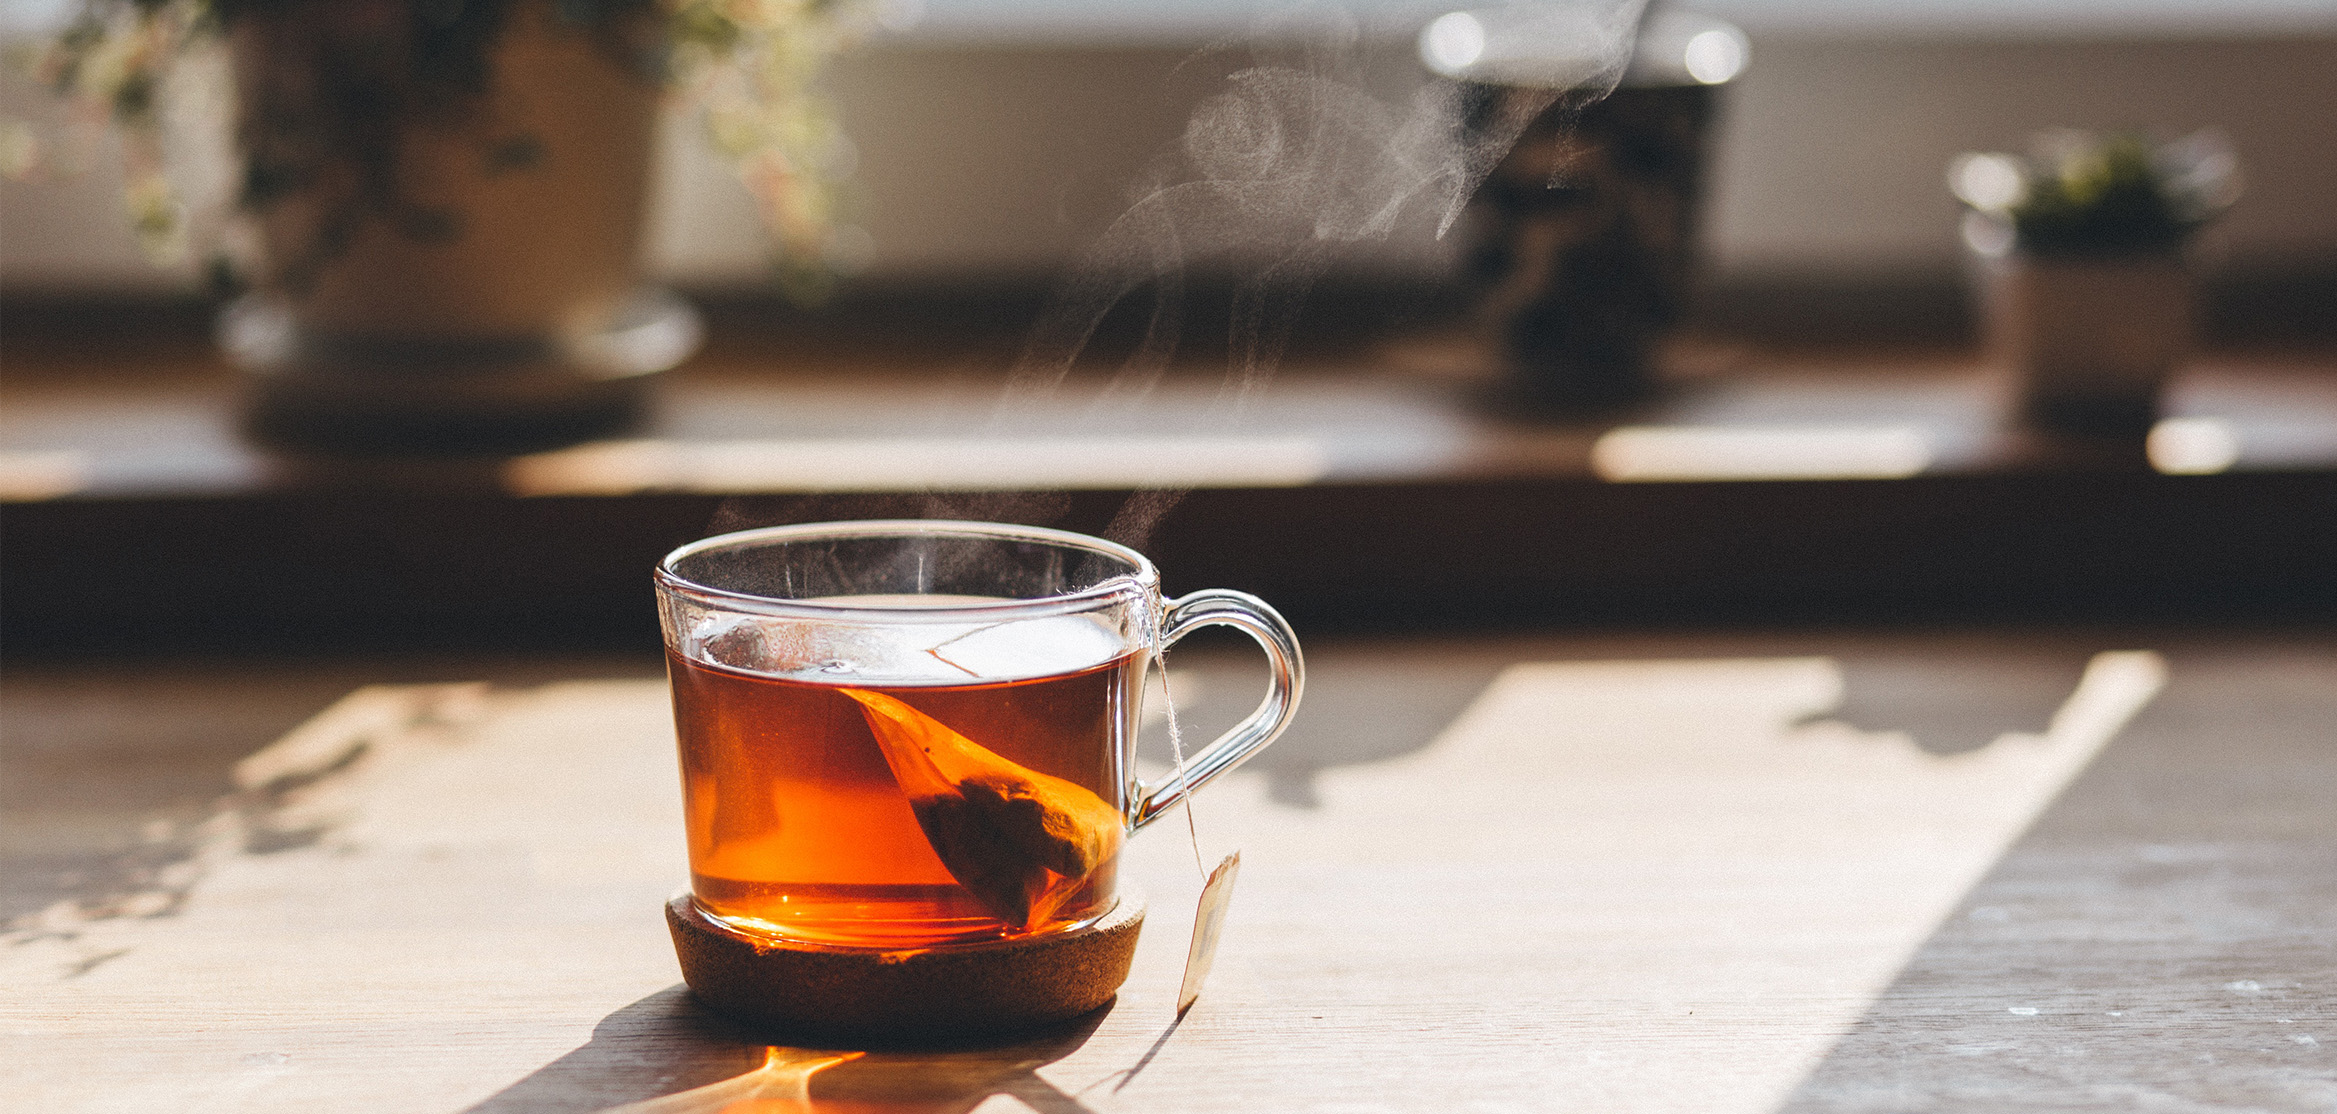 How to brew perfect tea?